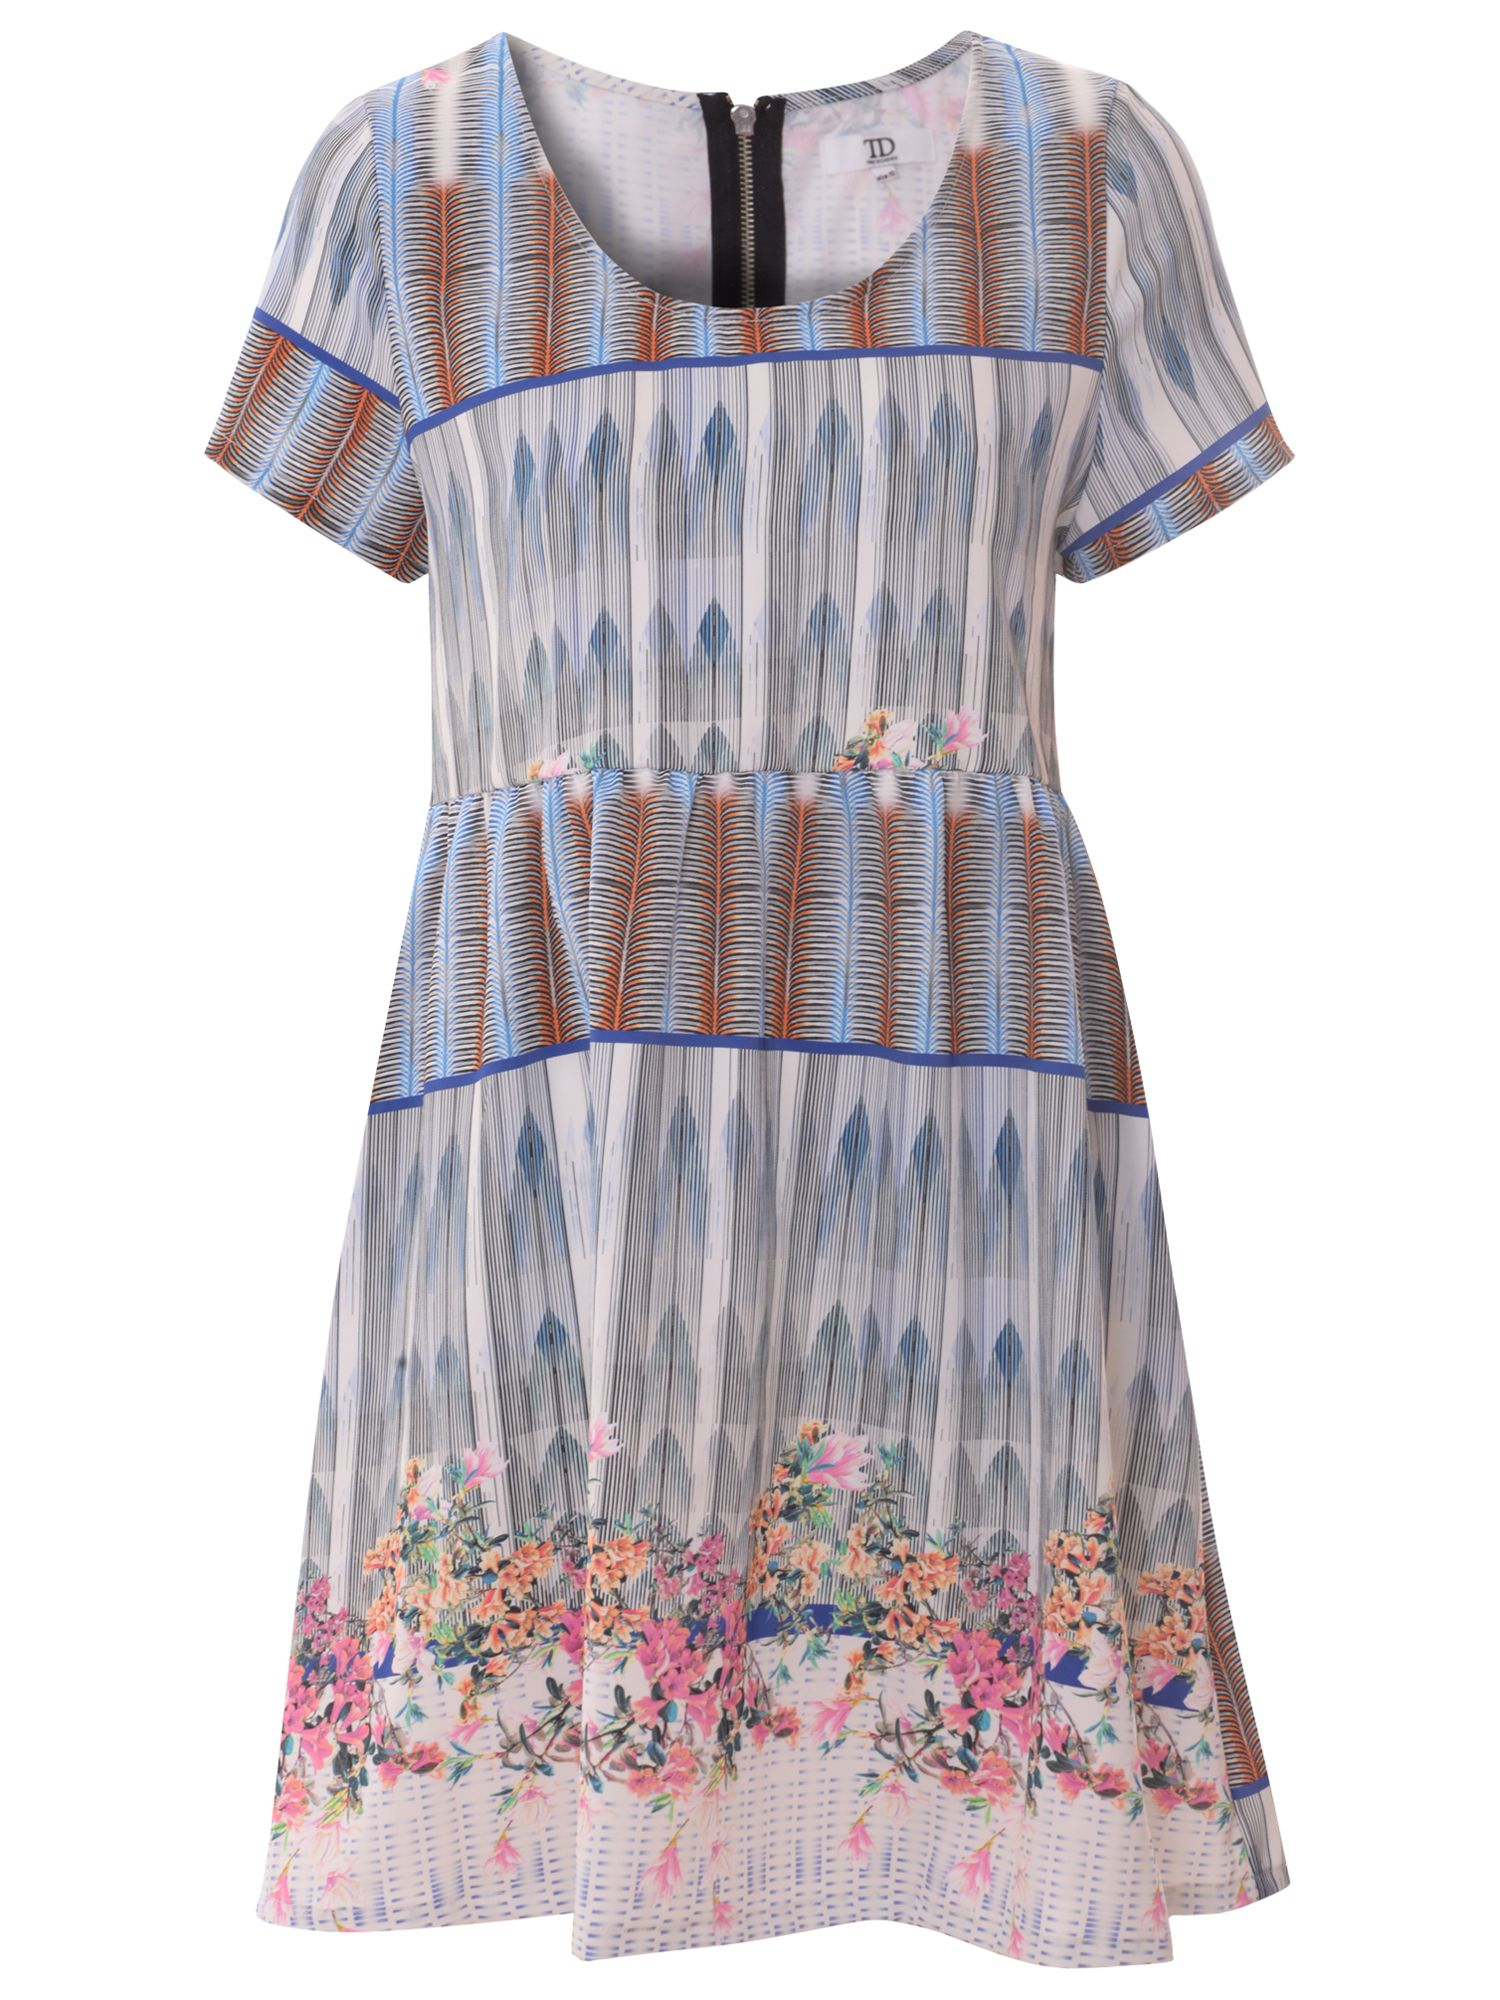 true decadence floral print smock dress multi blue, true, decadence, floral, print, smock, dress, multi, blue, true decadence, 8|14|12|18|10|16, clearance, womenswear offers, womens dresses offers, women, womens dresses, special offers, 1599221